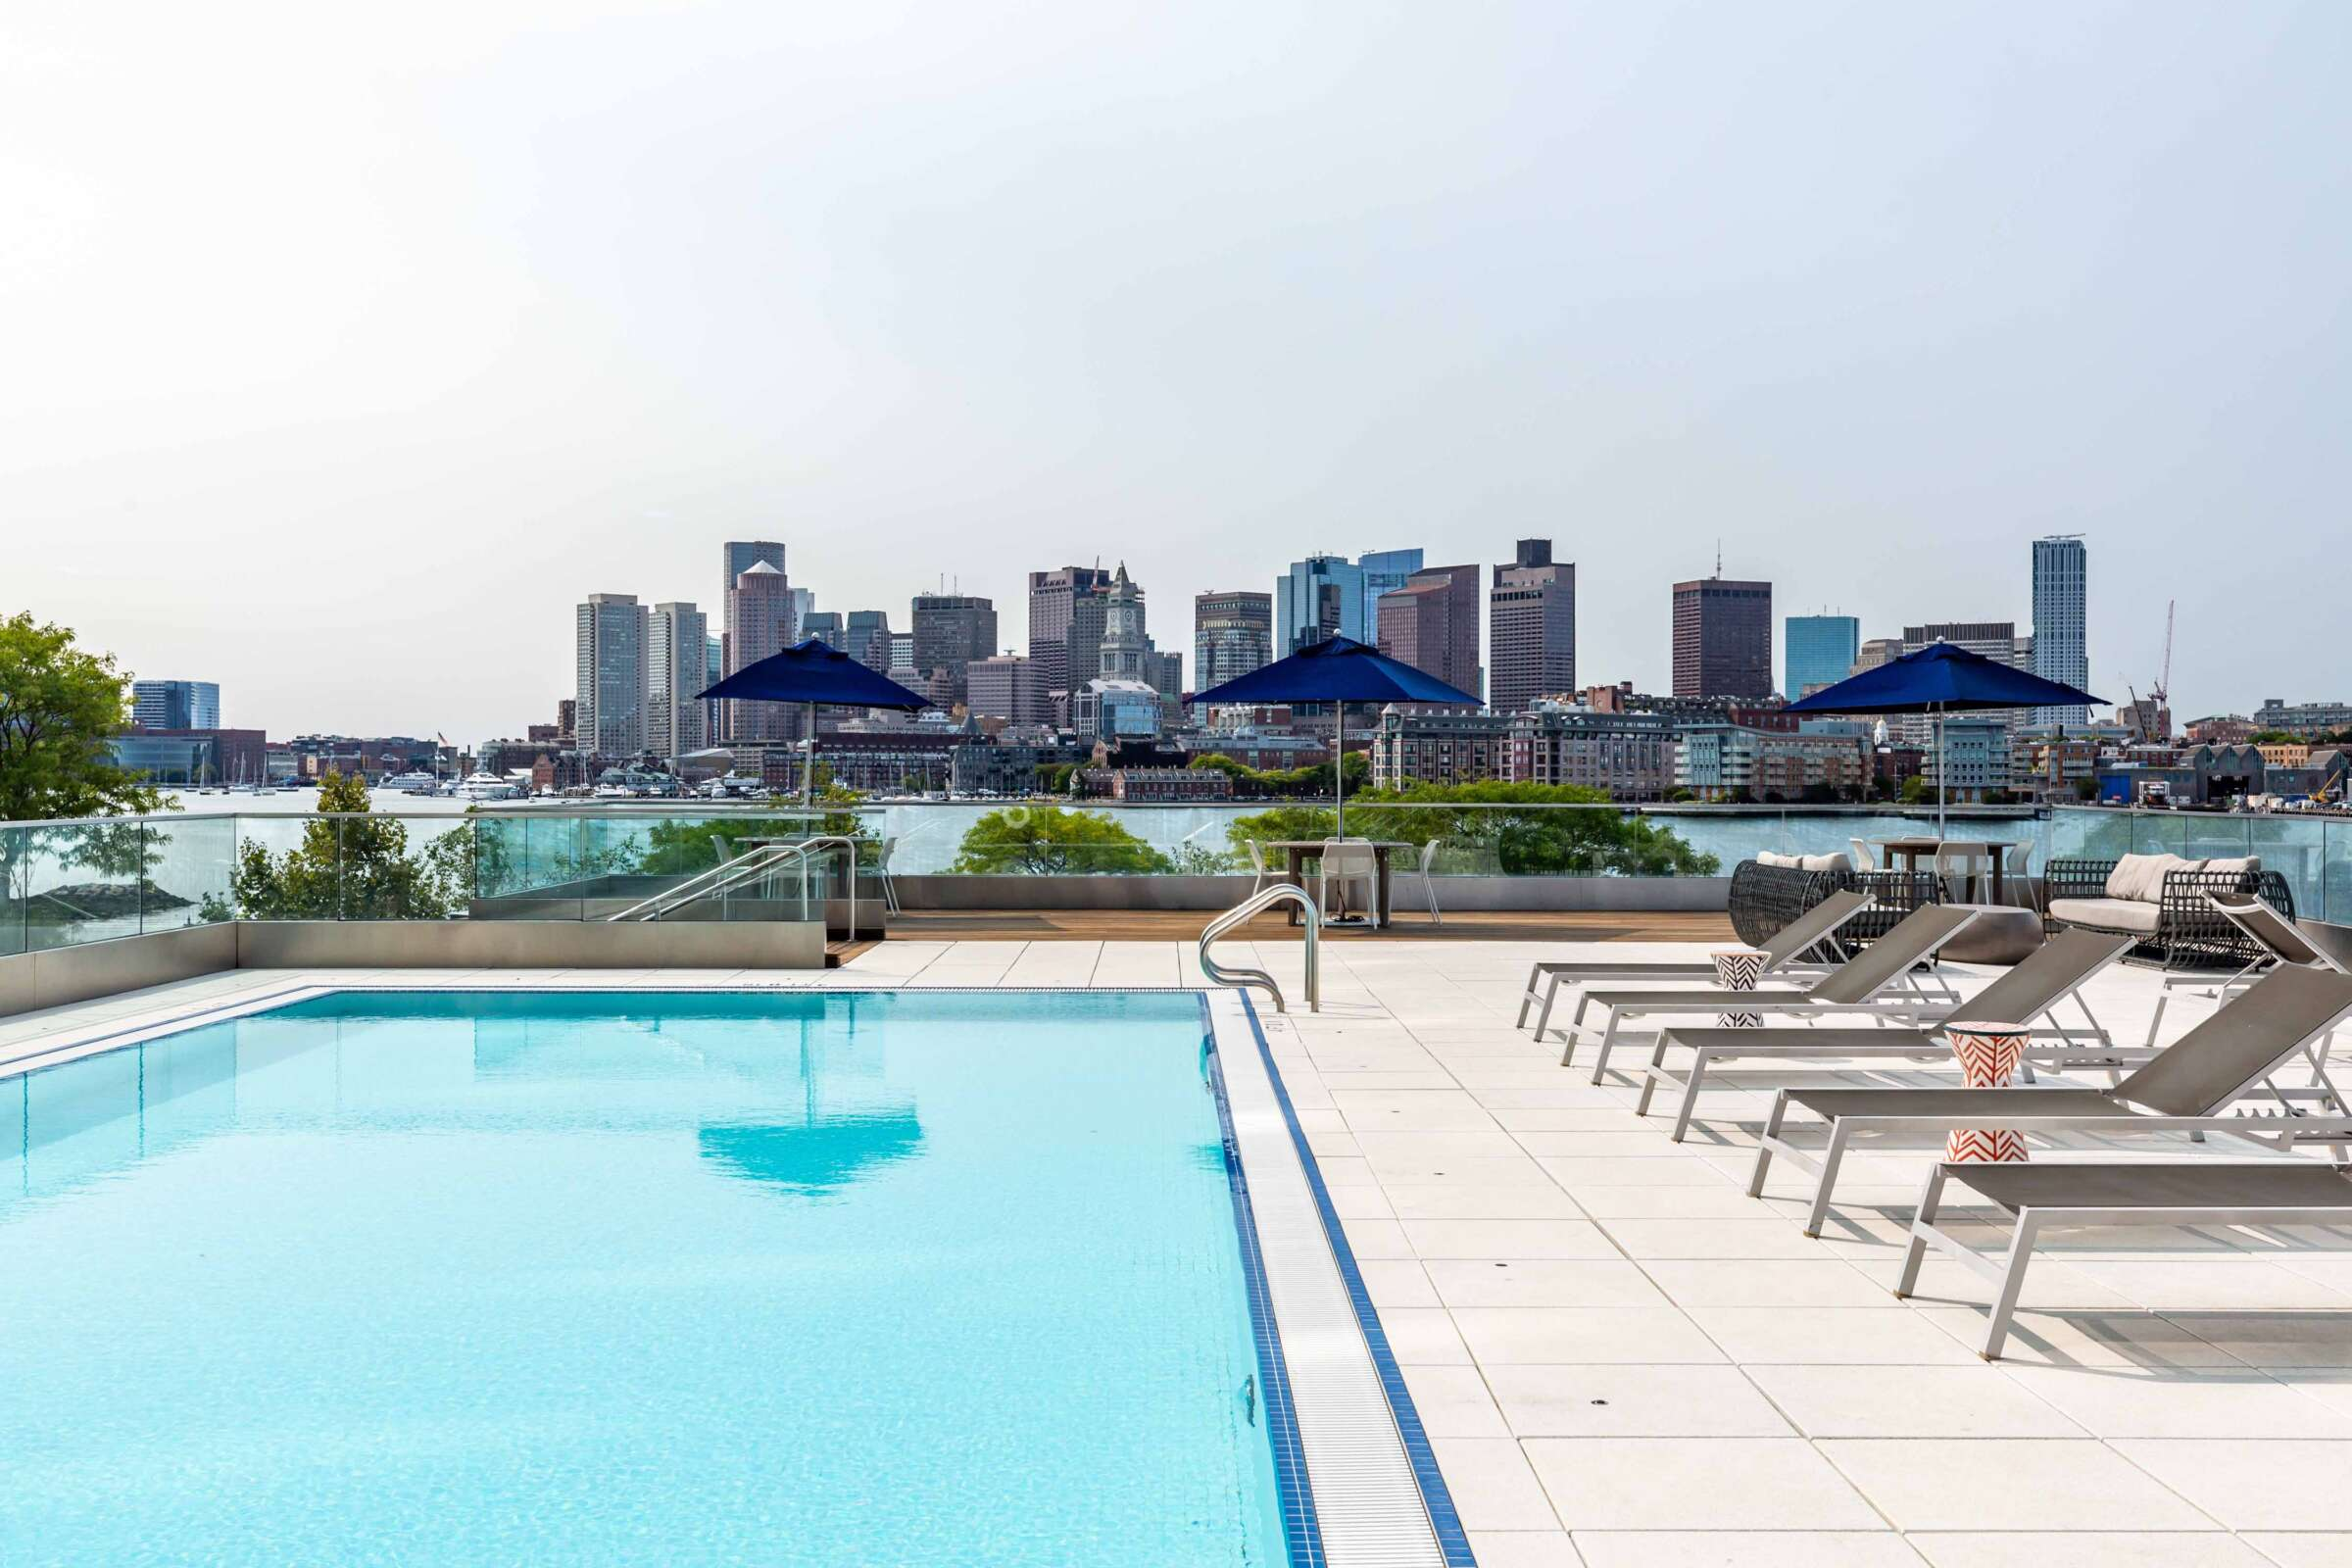 The Eddy East Boston Apartments Amenities 16 pool deck